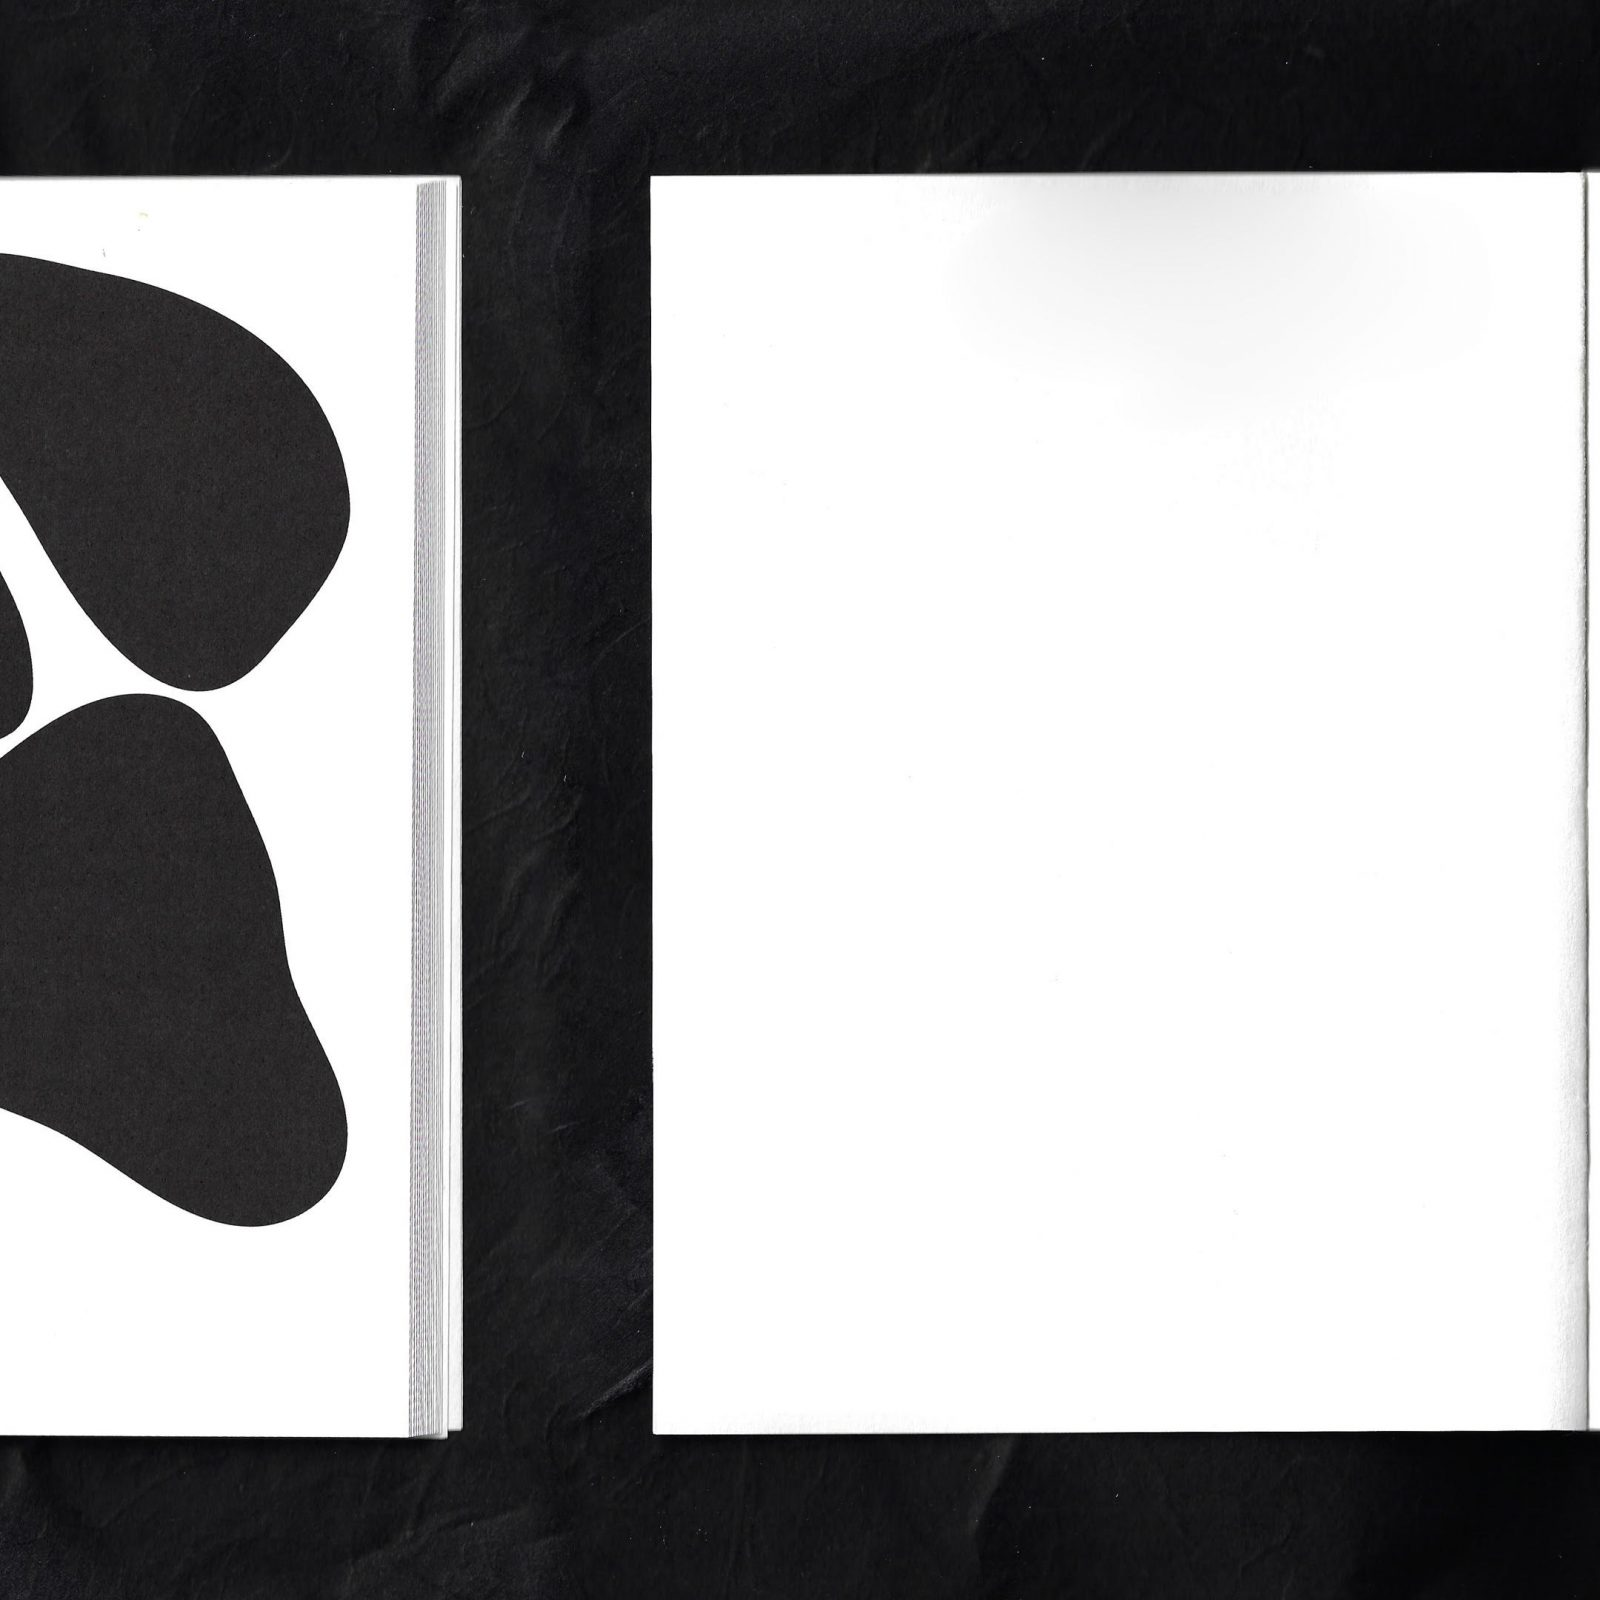 Donau Book by CinCin Captivates With Minimal Design, and beautiful papers